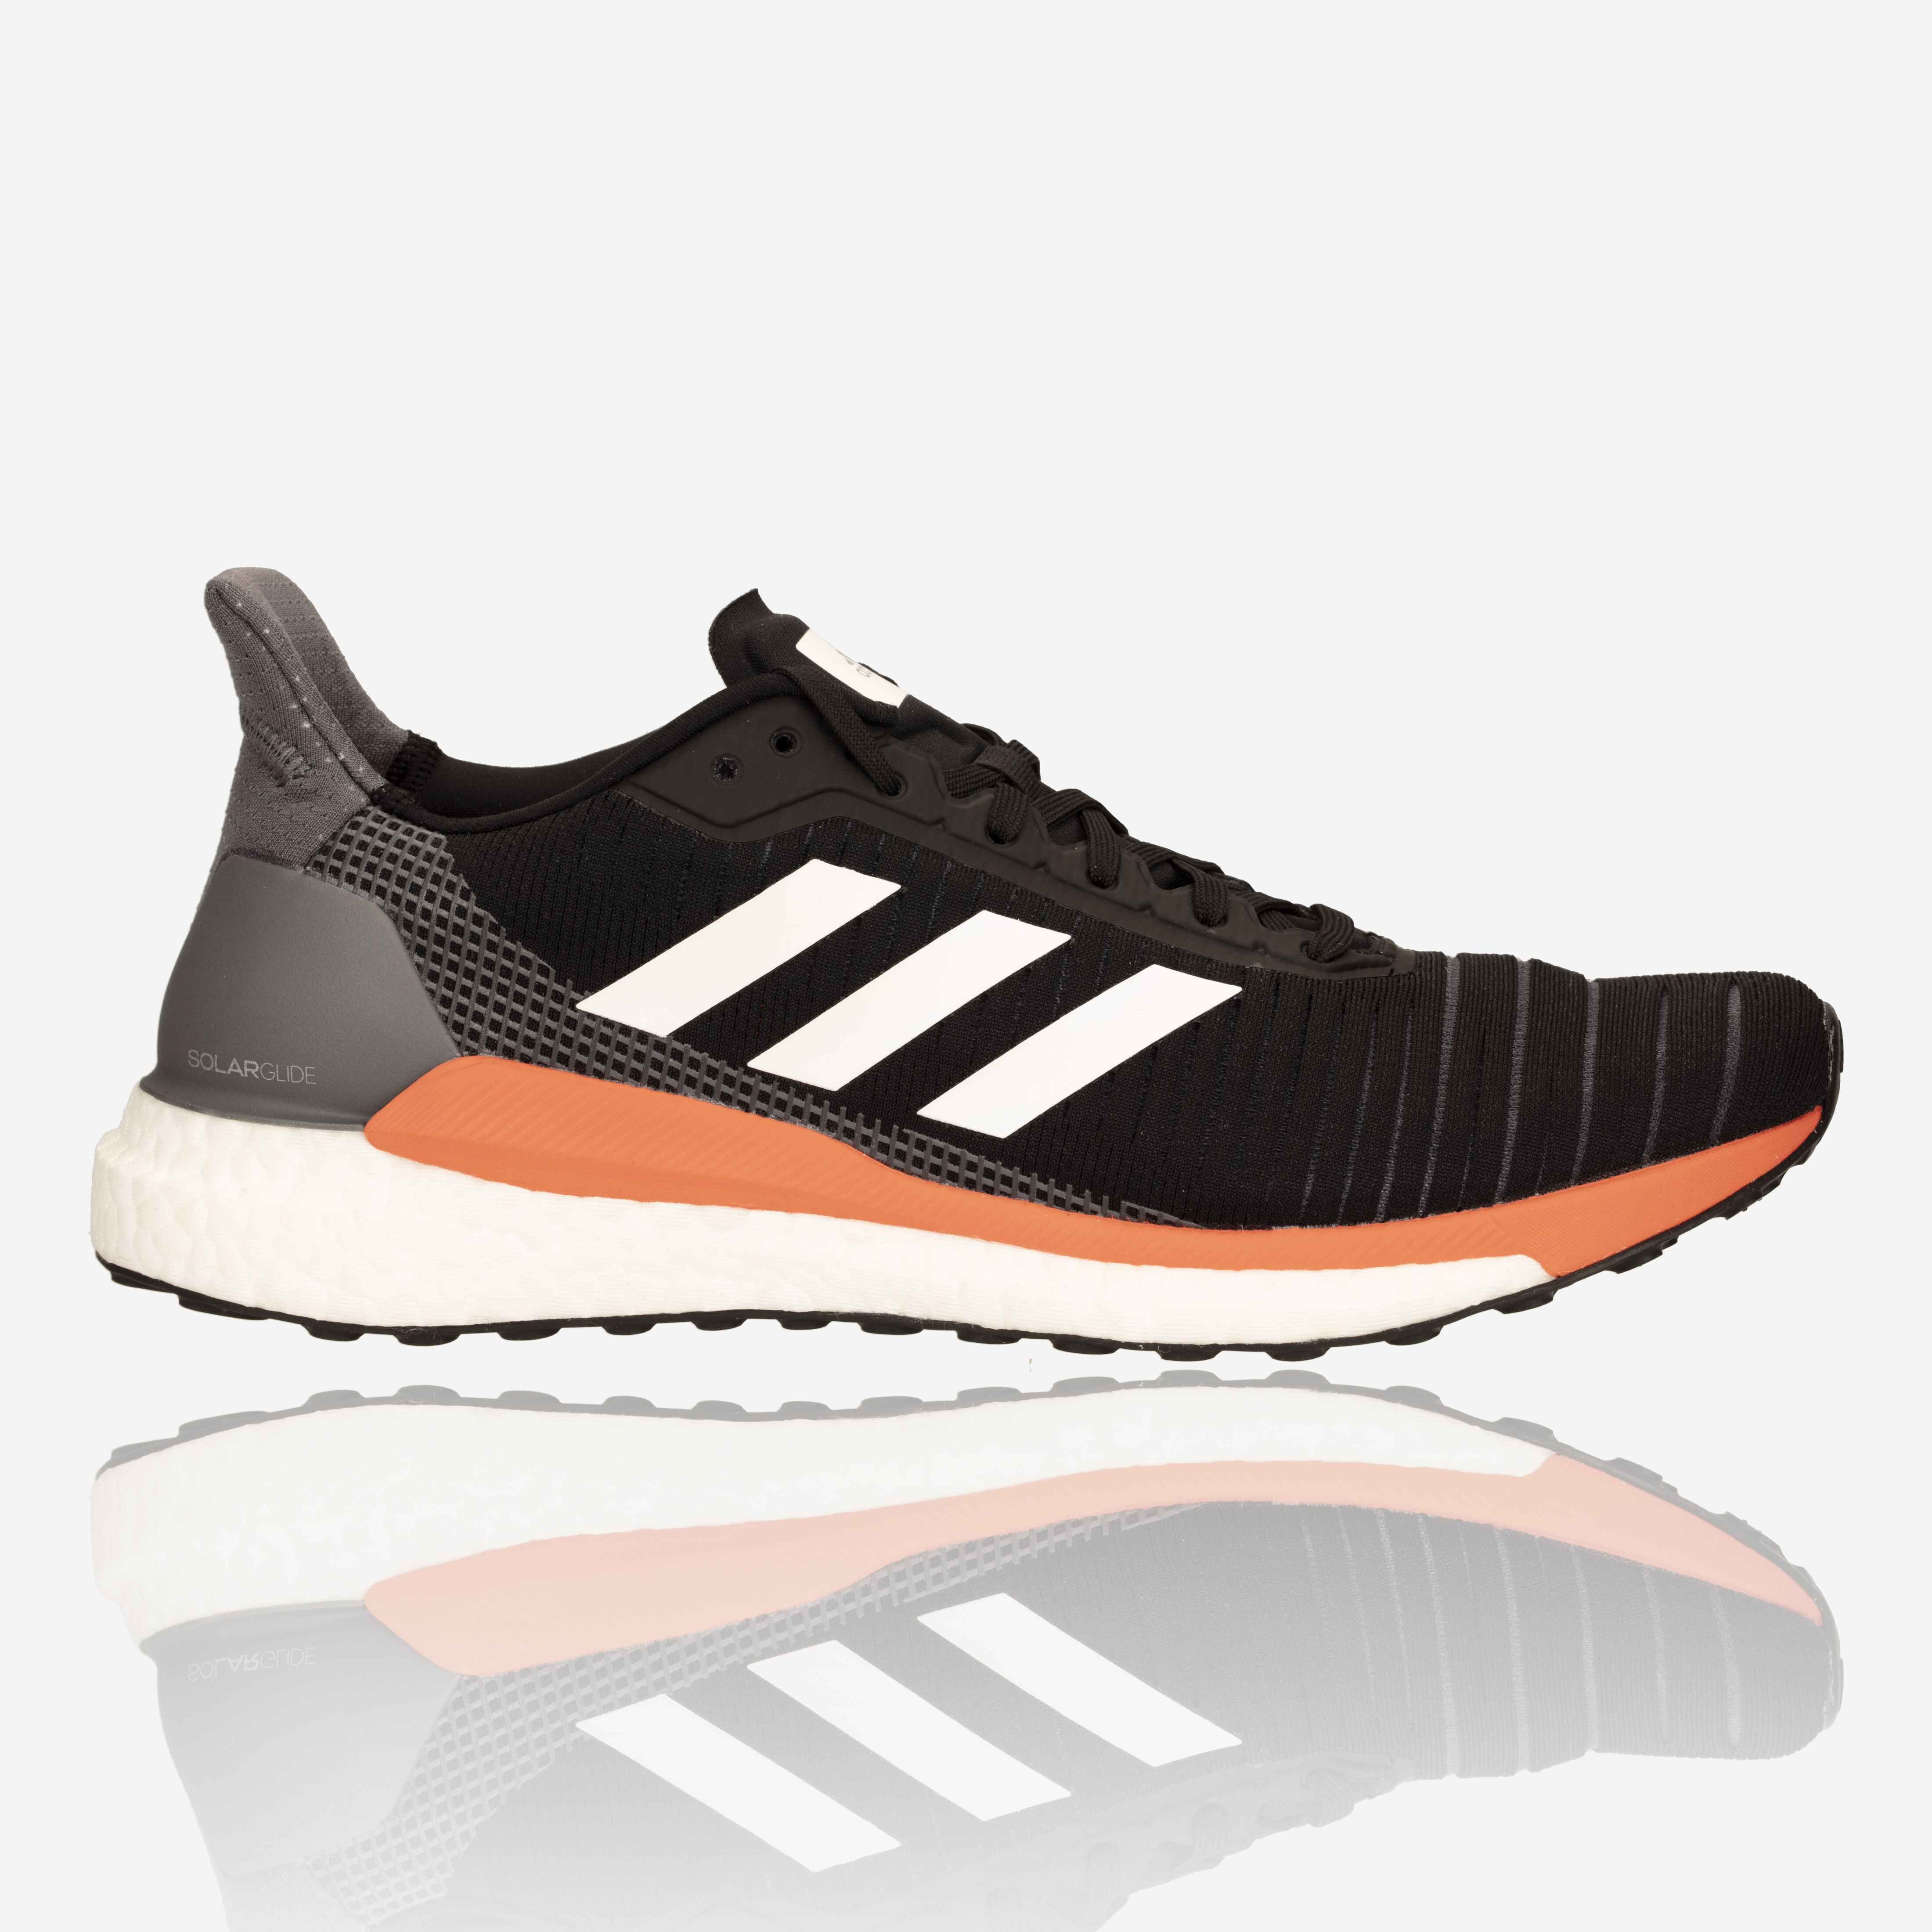 Supernova Sequence 7 Boost Mens Supportive and cushioned